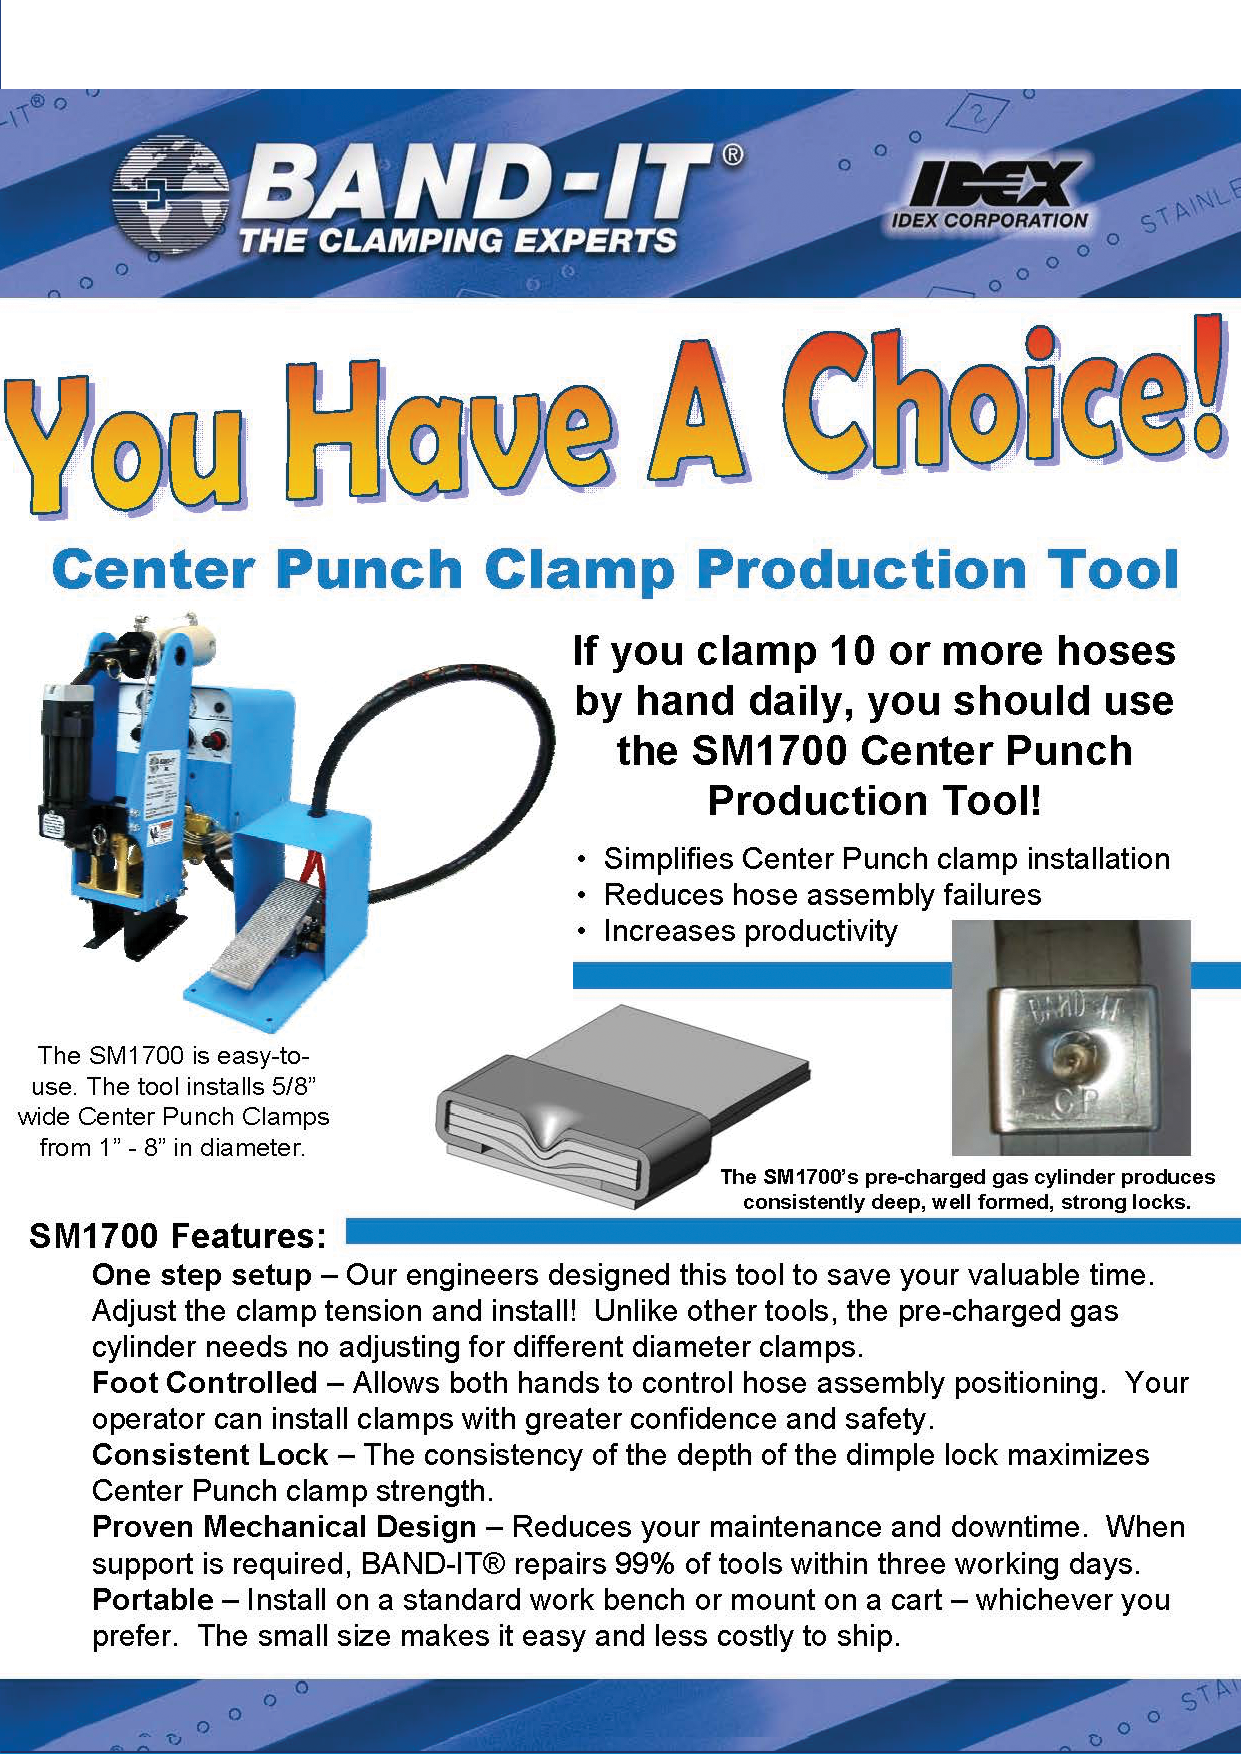 Center Punch Clamp Production